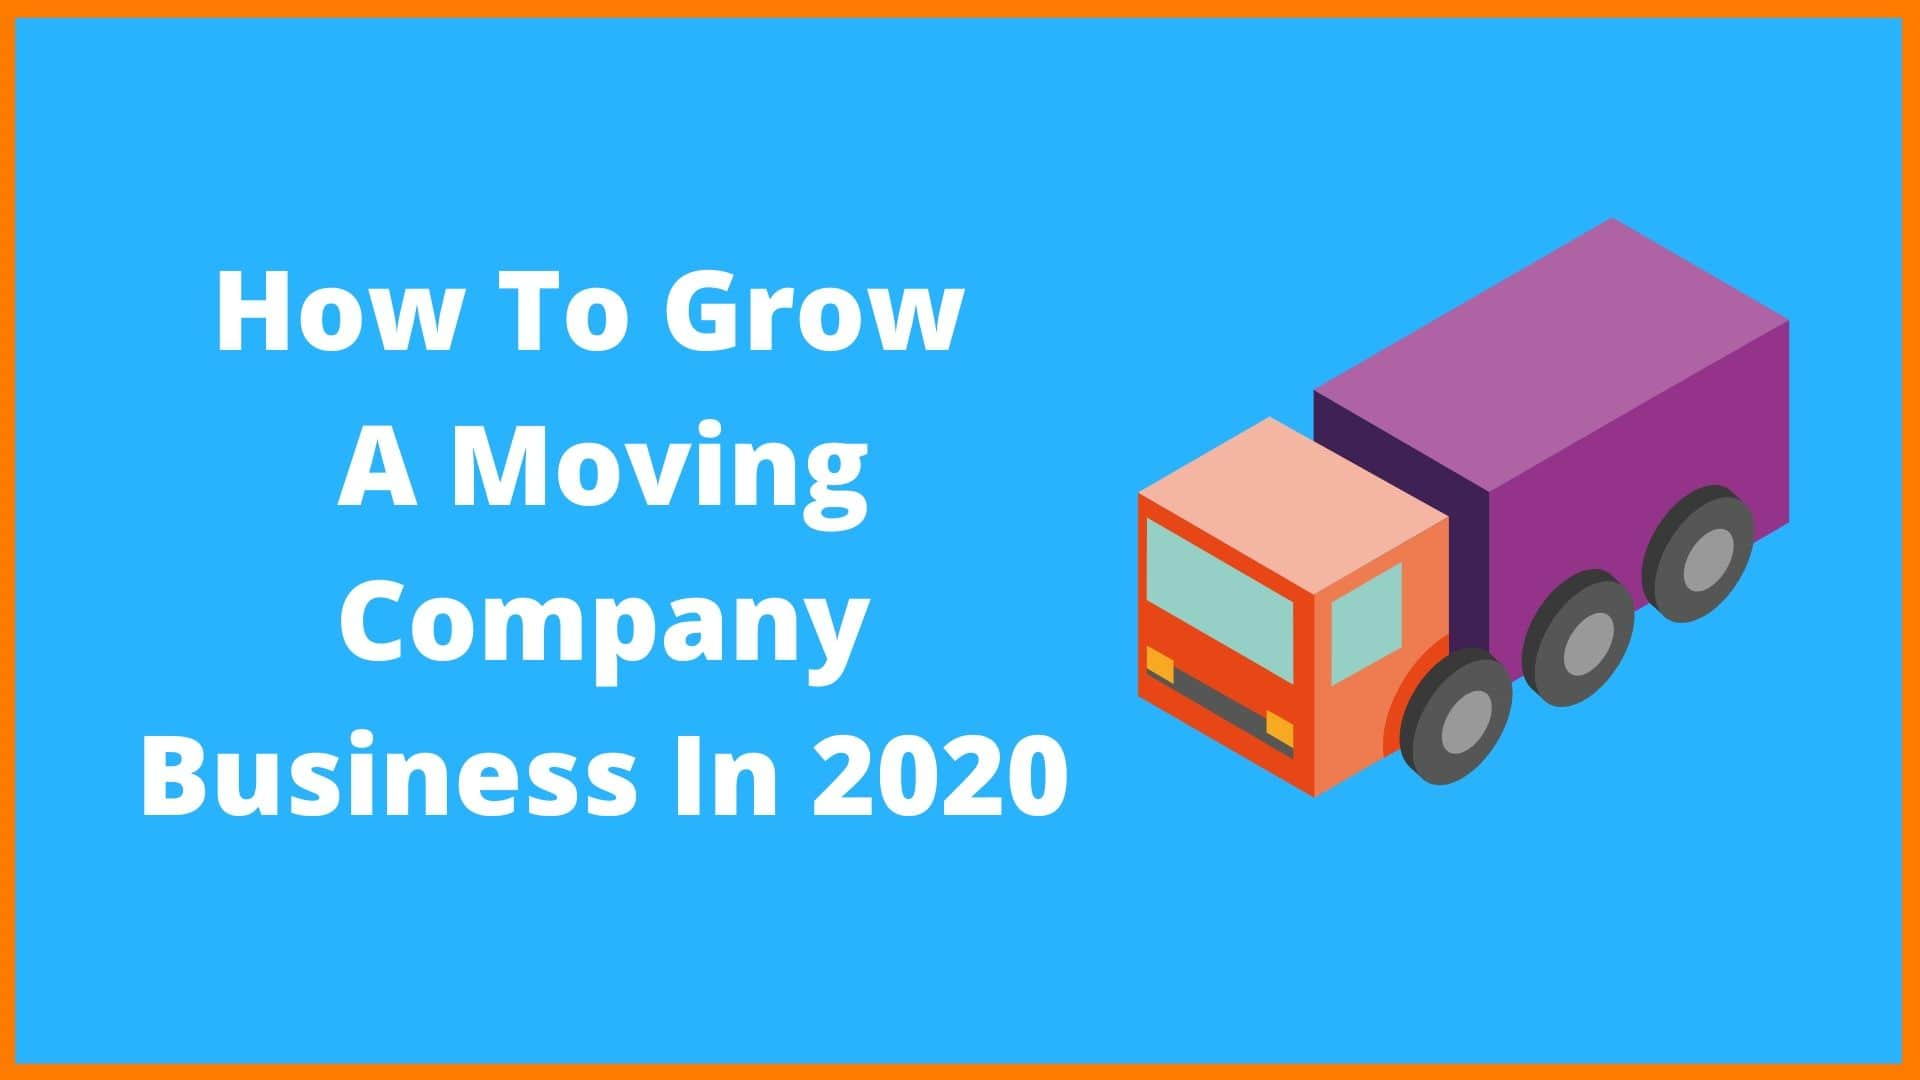 How To Grow A Moving Company Business In 2020